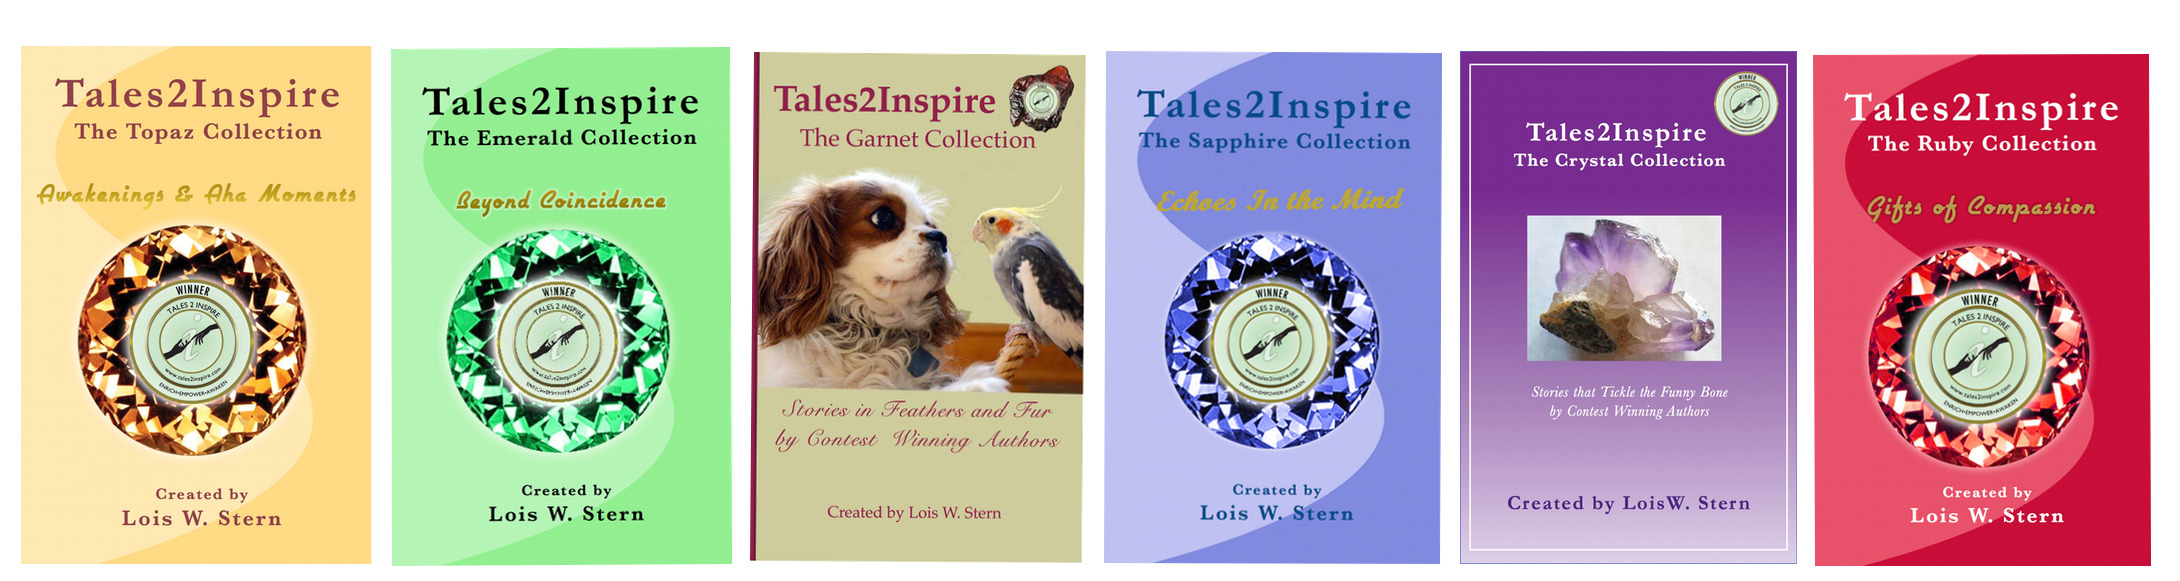 Tales2Inspire ~ The Crystal Collection: Stories that Tickle the